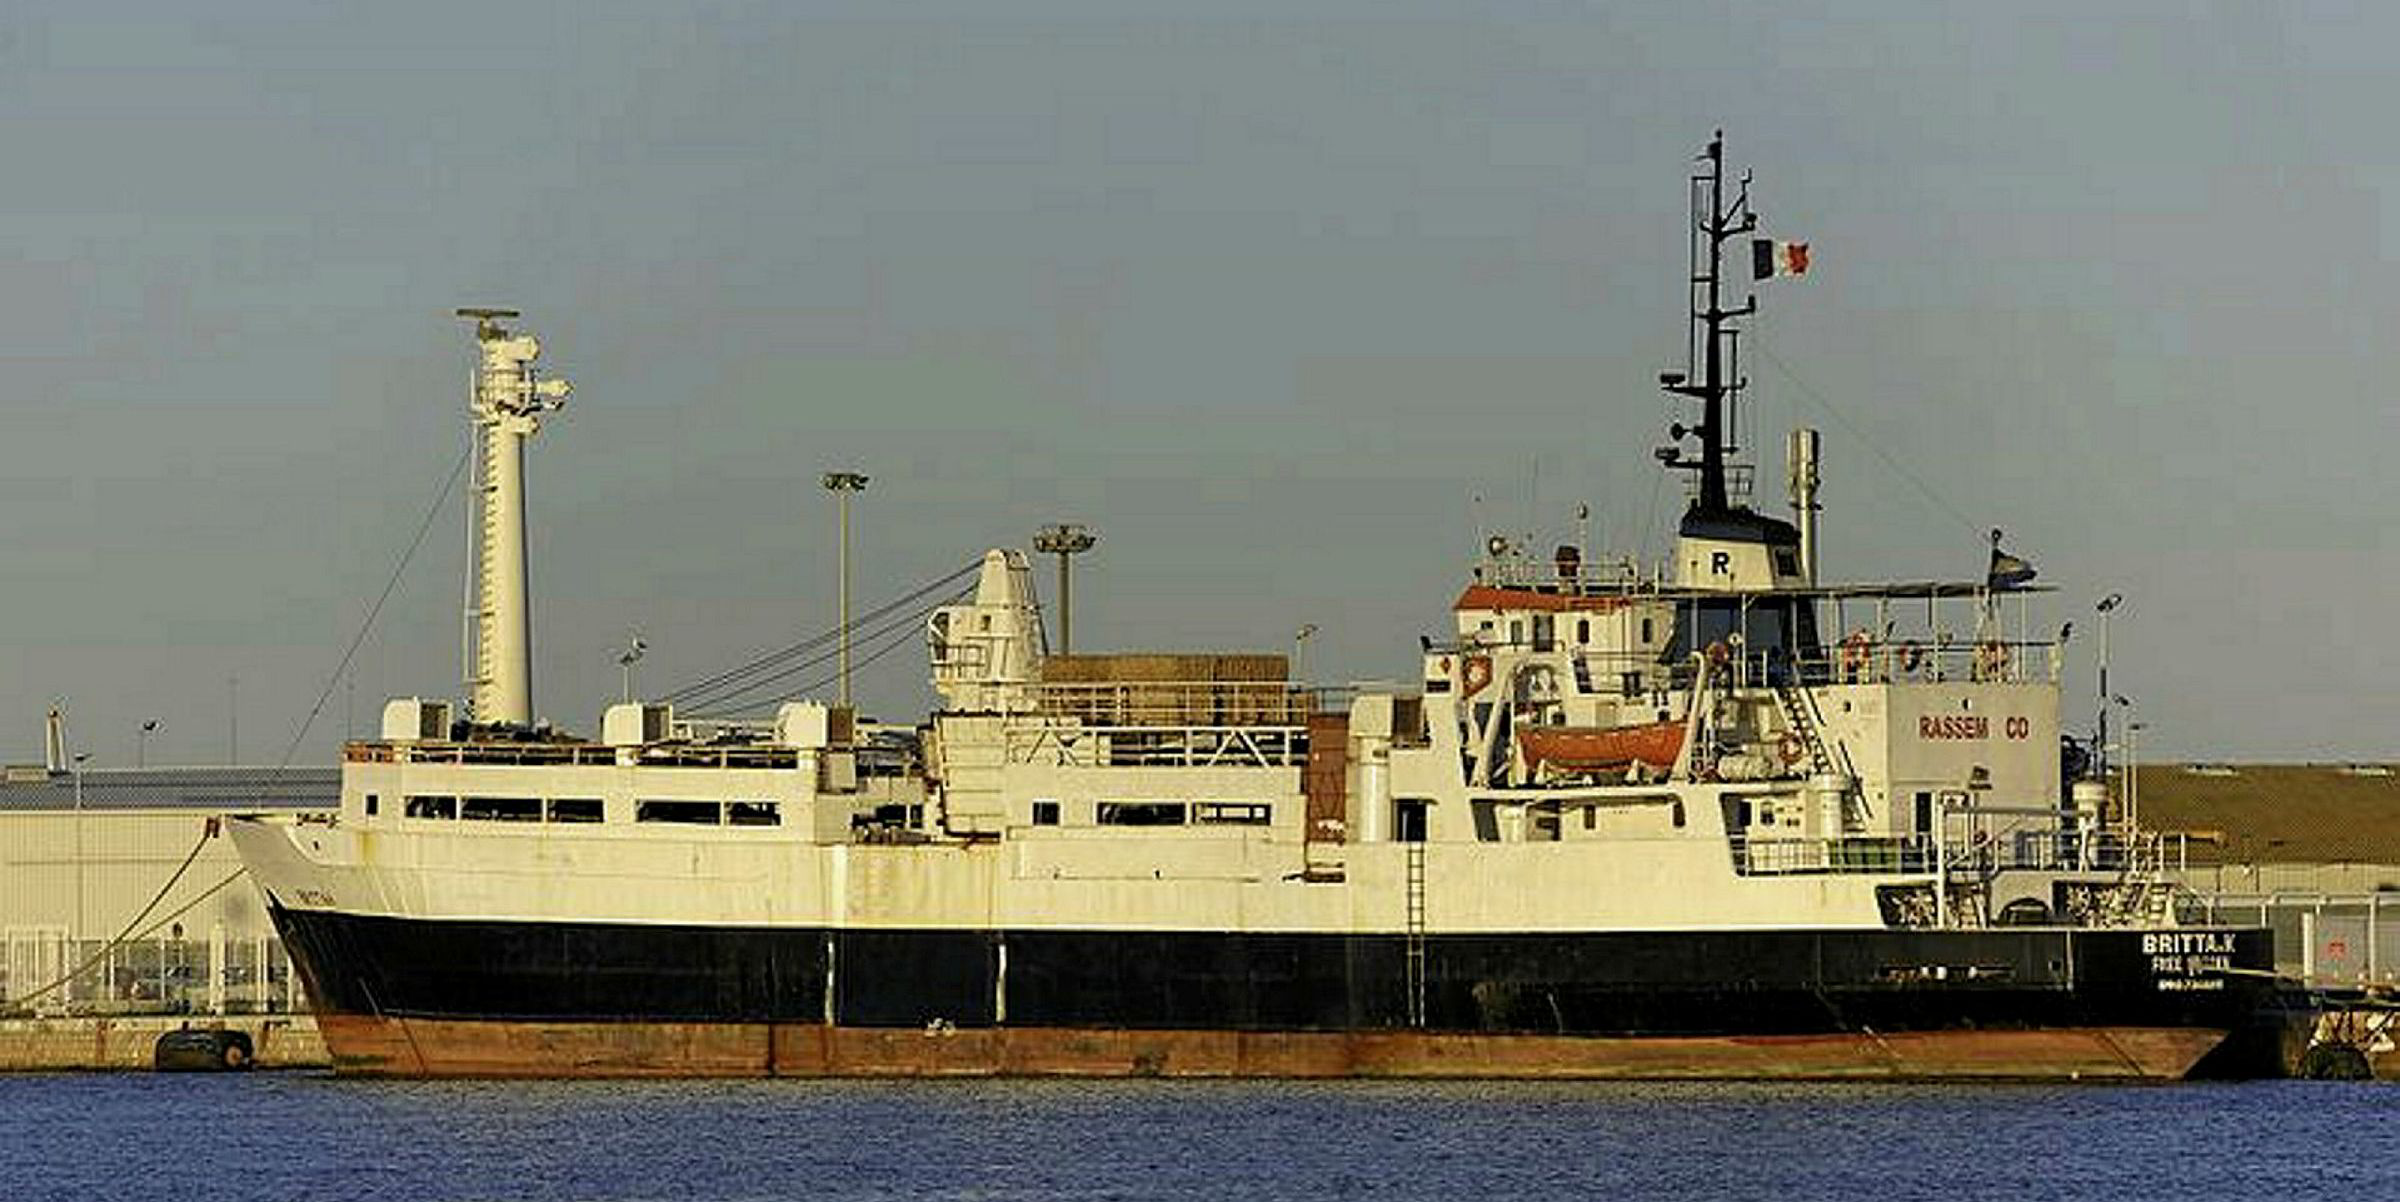 Livestock ship to be towed from Corsica to Beirut   TradeWinds